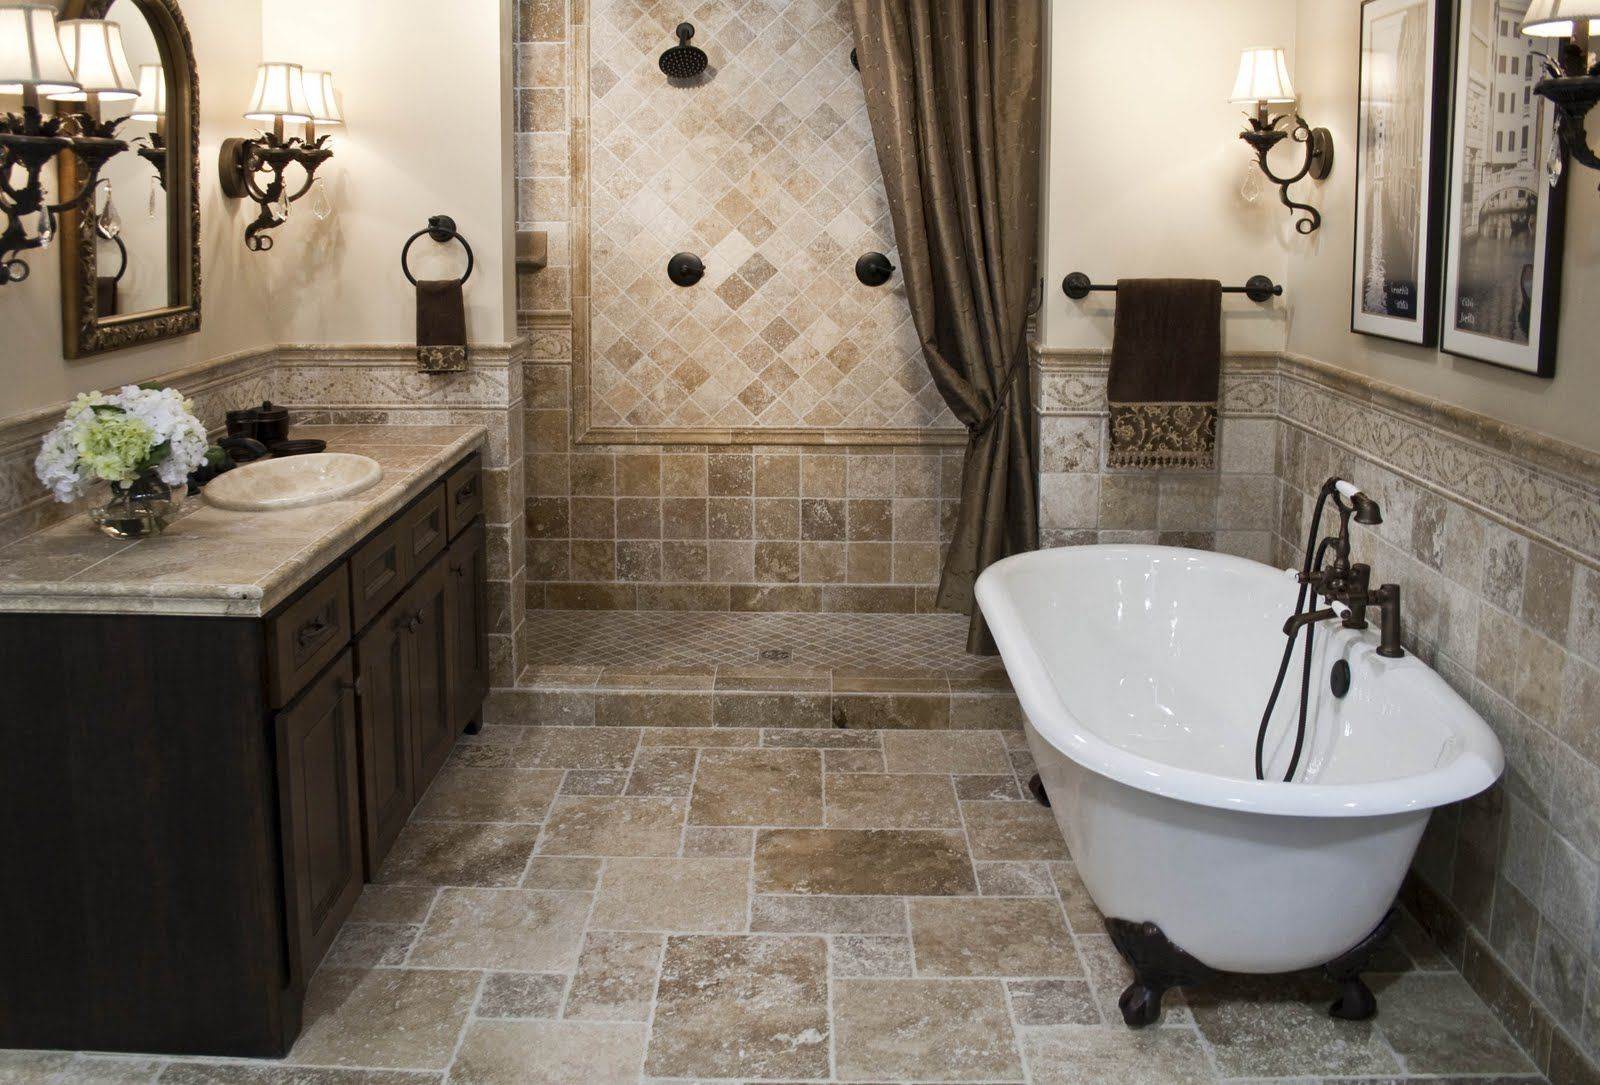 Remodeling pictures design ideas photos fairfax manassas burke va - If You Are Looking Best Shower Renovation Ideas Pictures In Burke Va We Will